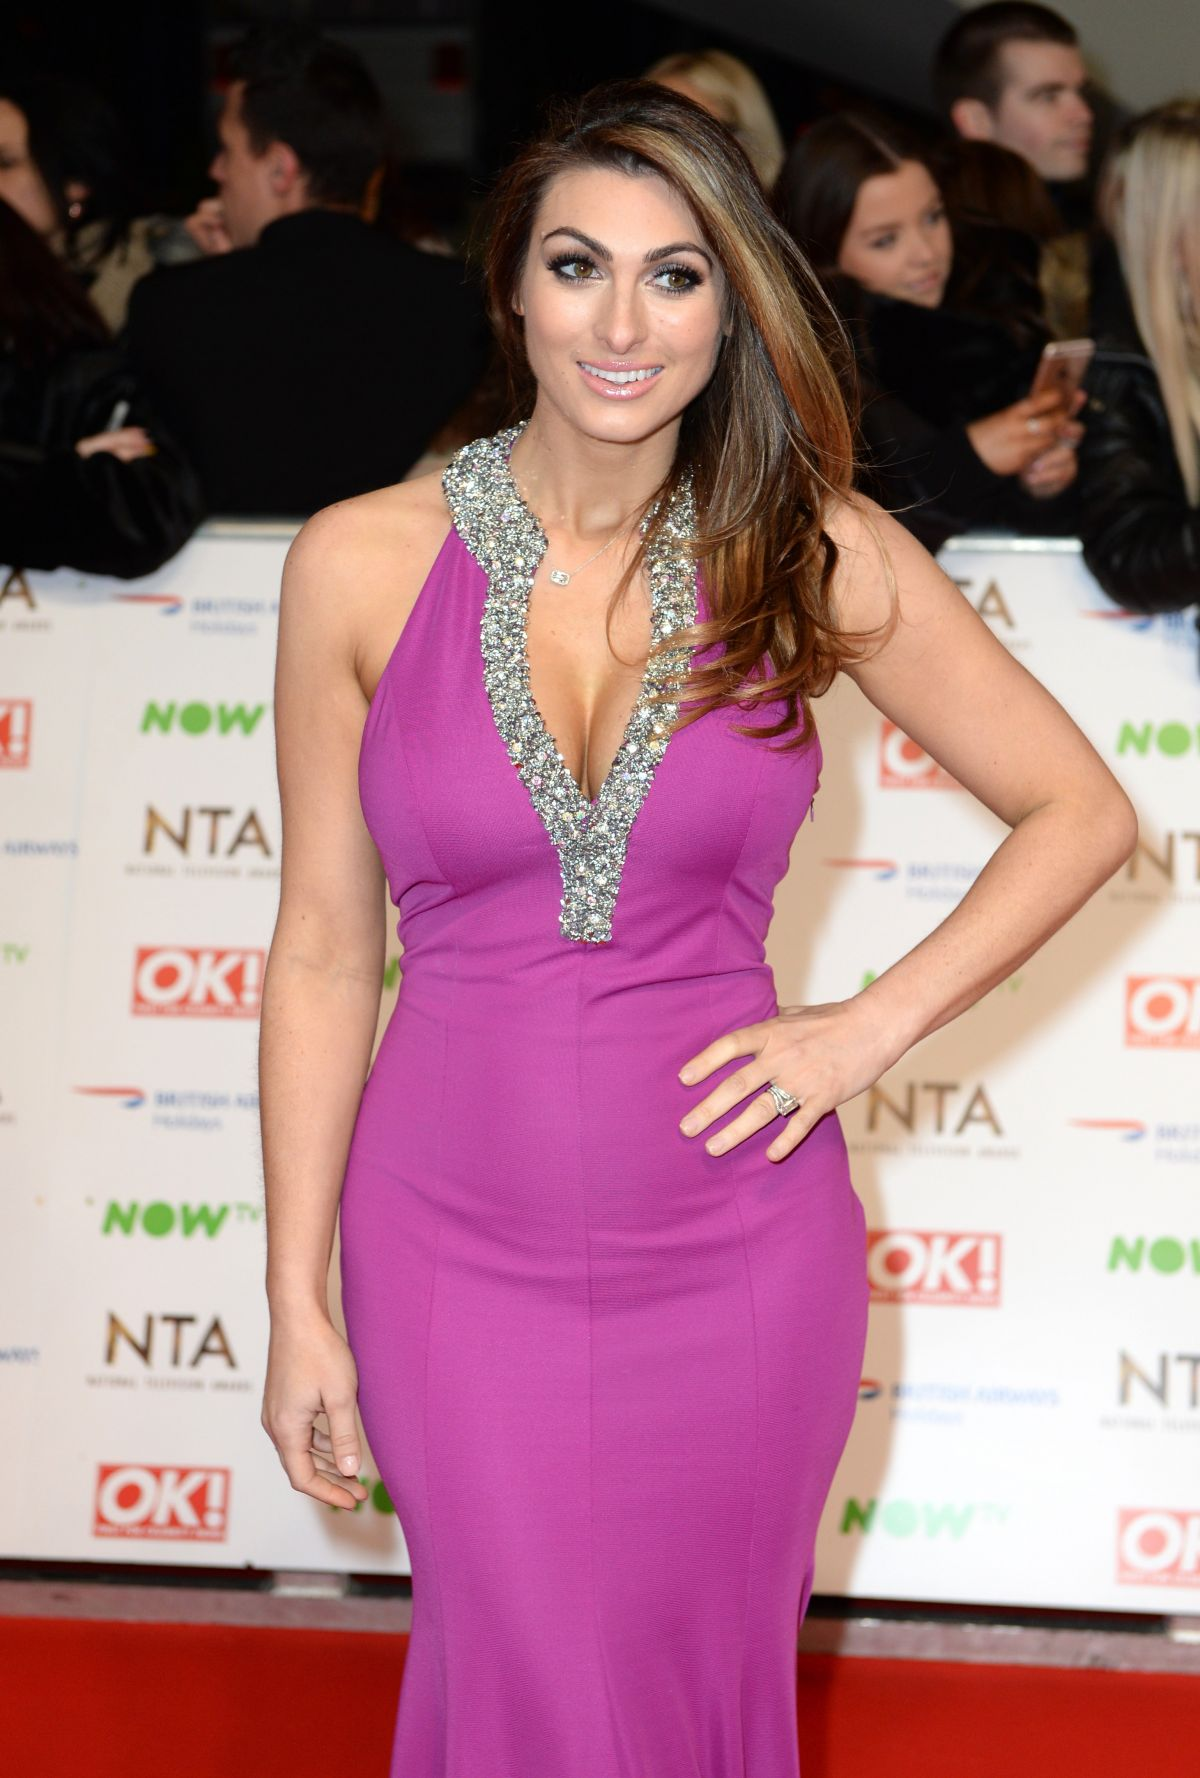 LUISA ZISSMAN at 2016 National Television Awards in London 01/20/2016